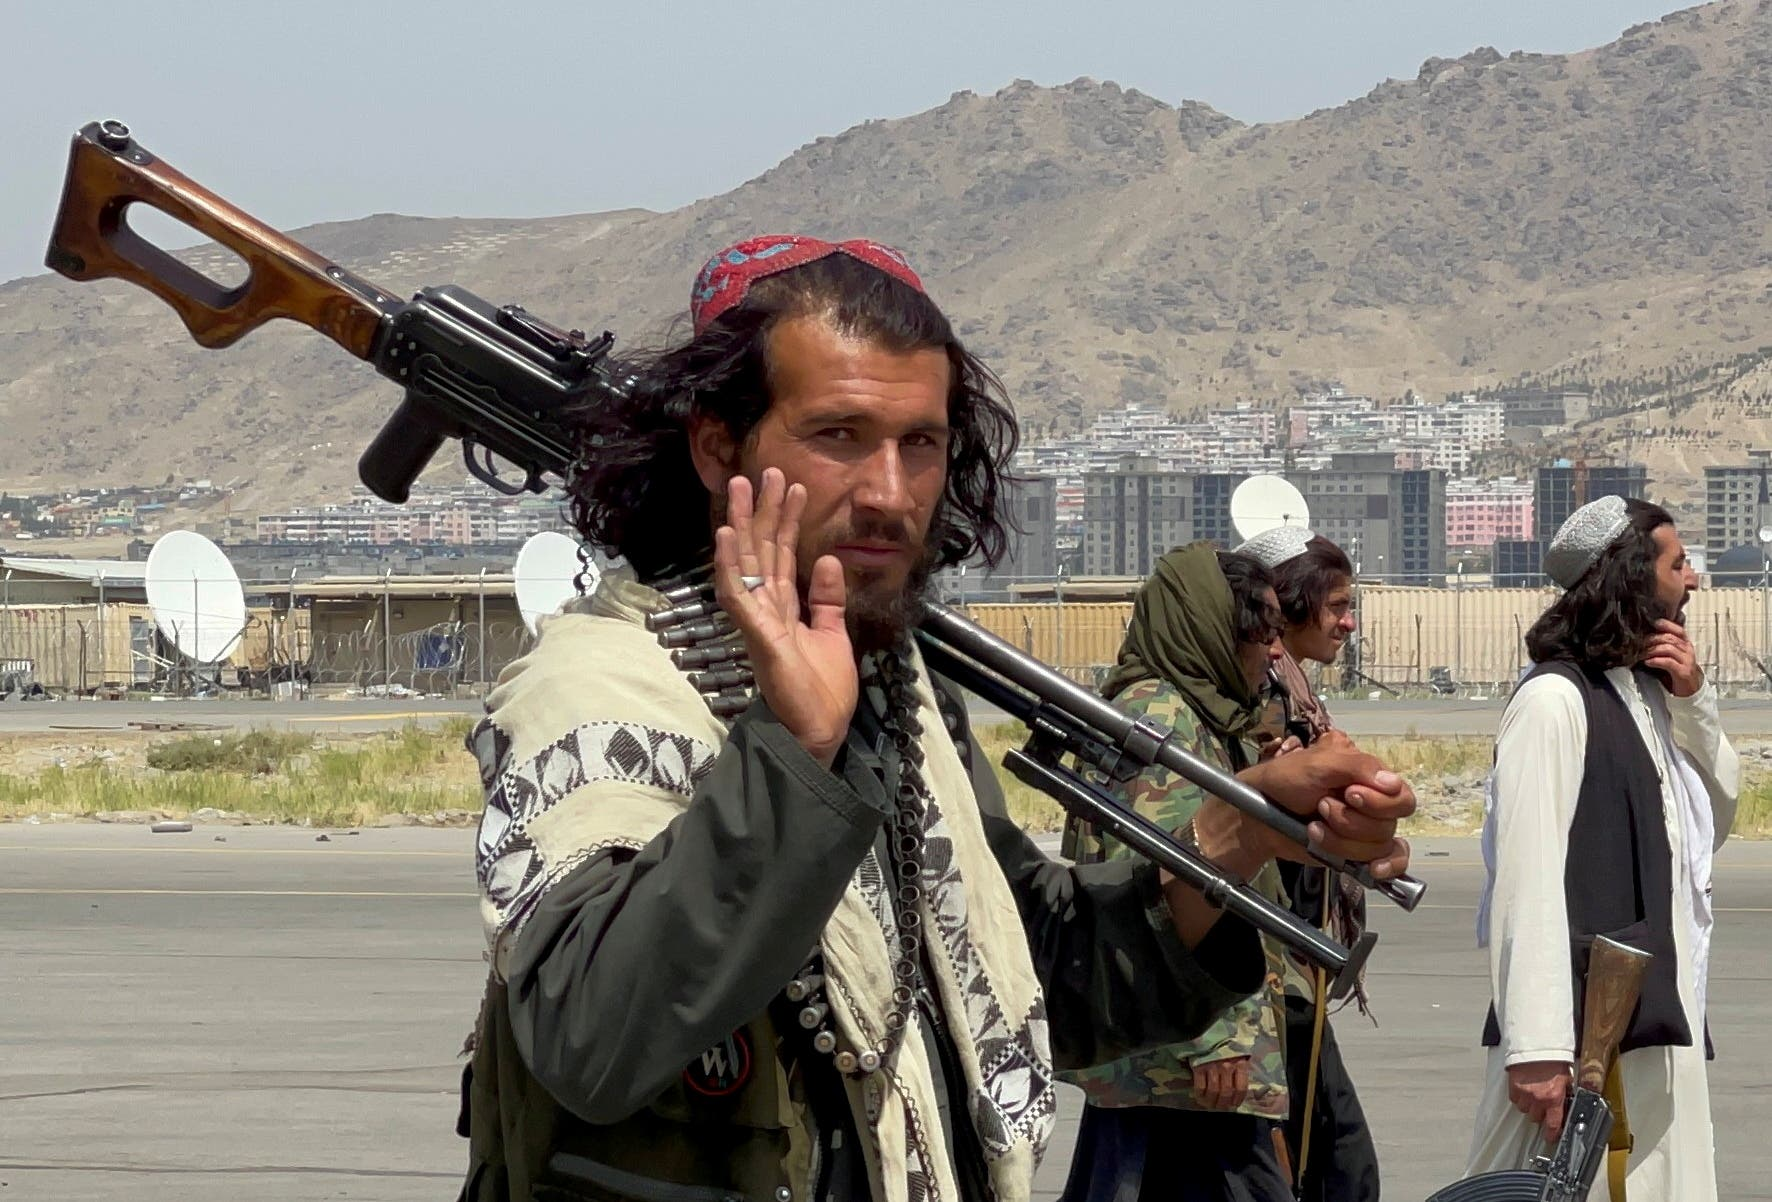 Taliban forces patrol near the entrance gate of Hamid Karzai International Airport, a day after U.S troops withdrawal, in Kabul, Afghanistan August 31, 2021. (File photo: Reuters)